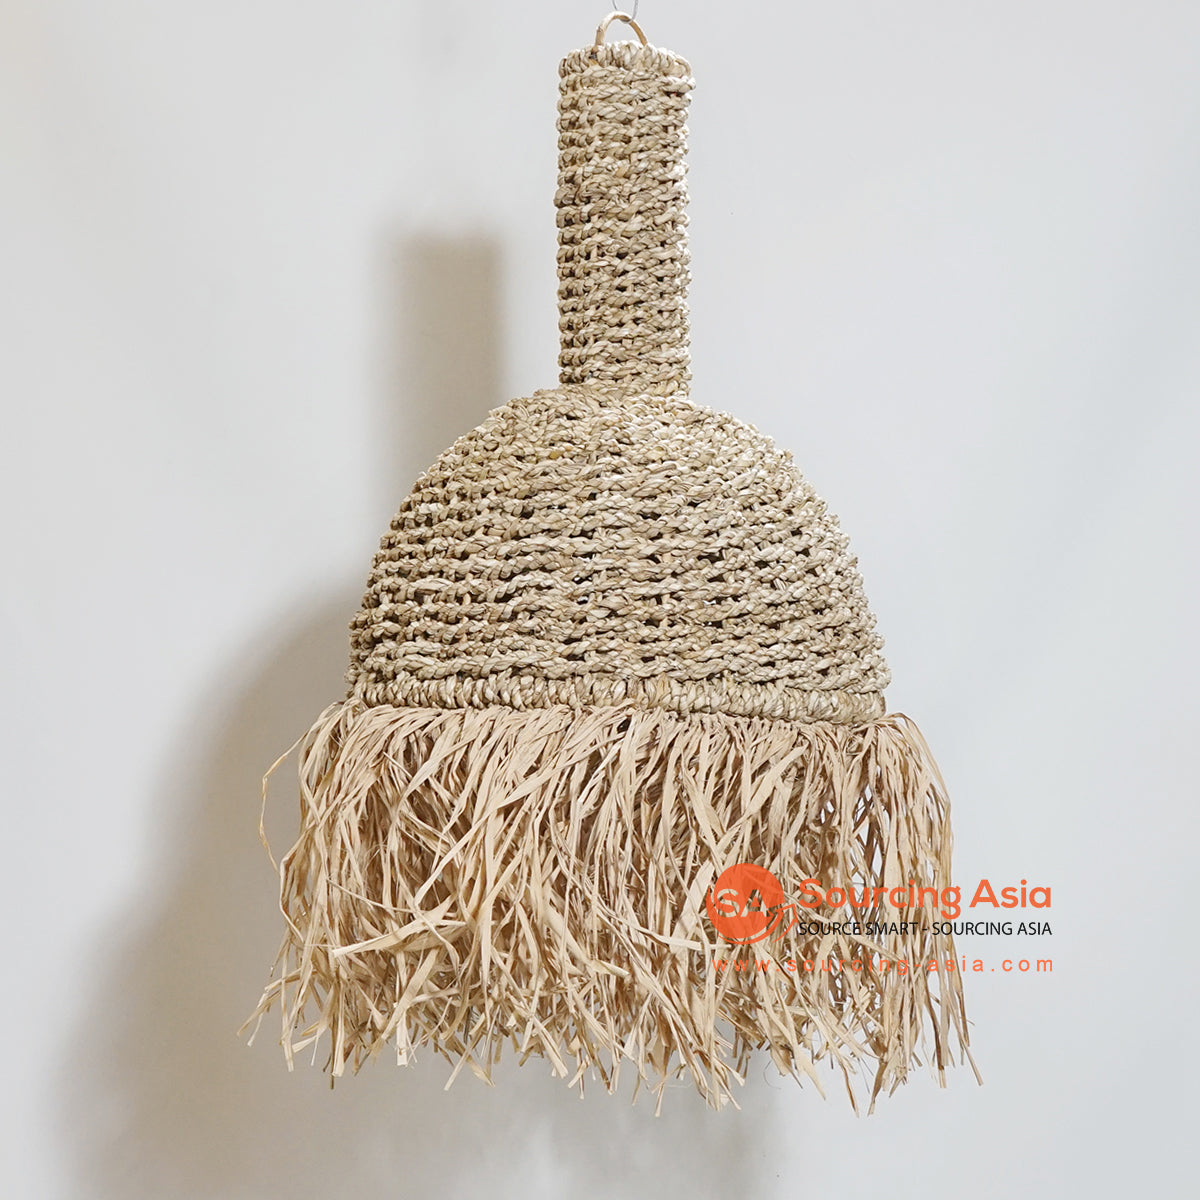 HBSC211-2 SEA GRASS HANGING LAMP